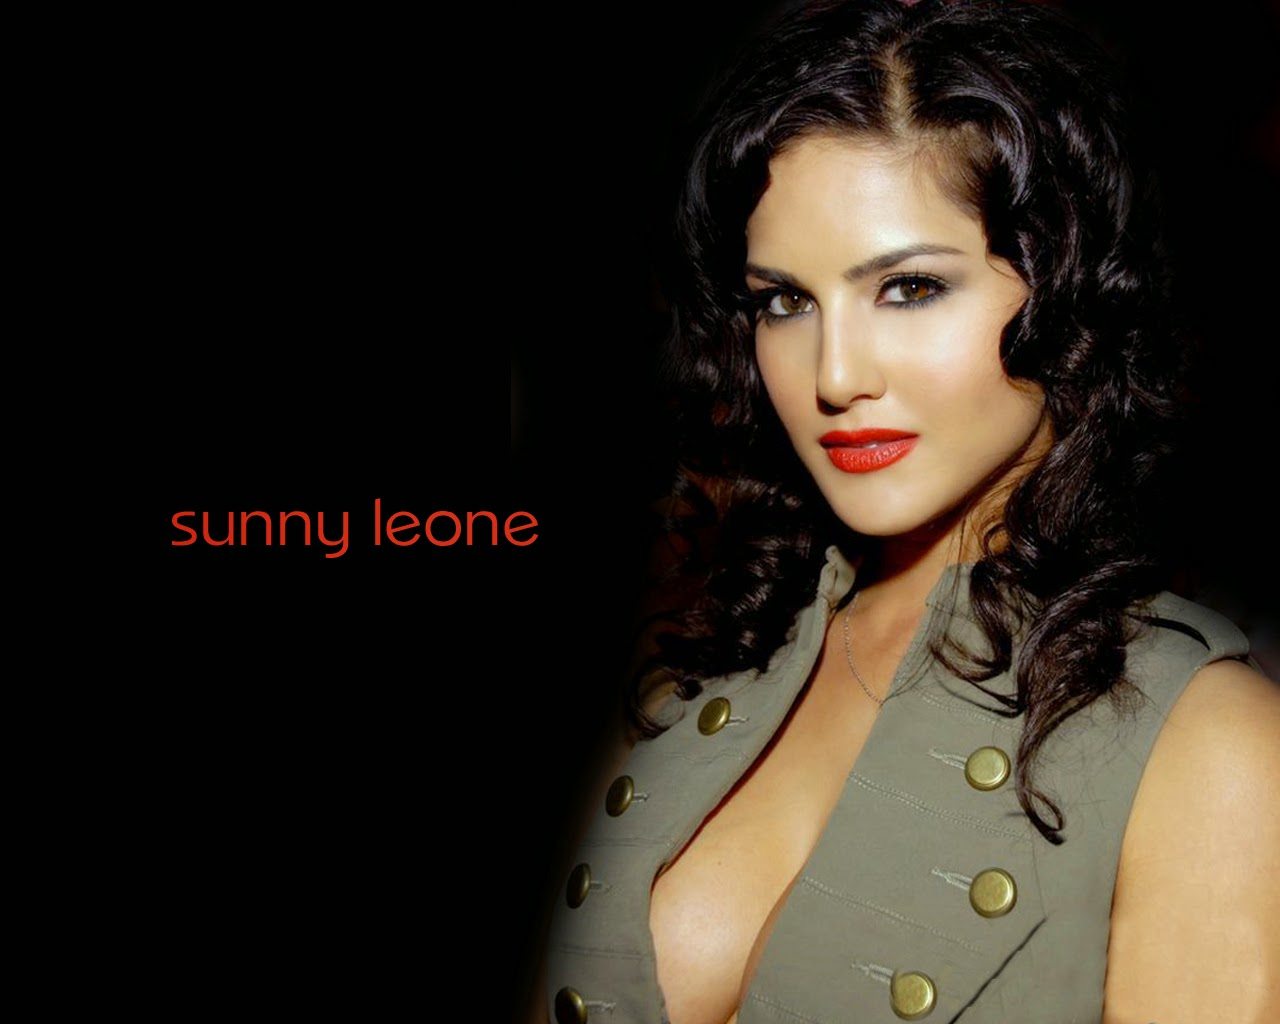 Global Pictures Gallery Sunny Leone Full Hd Wallpapers-9619